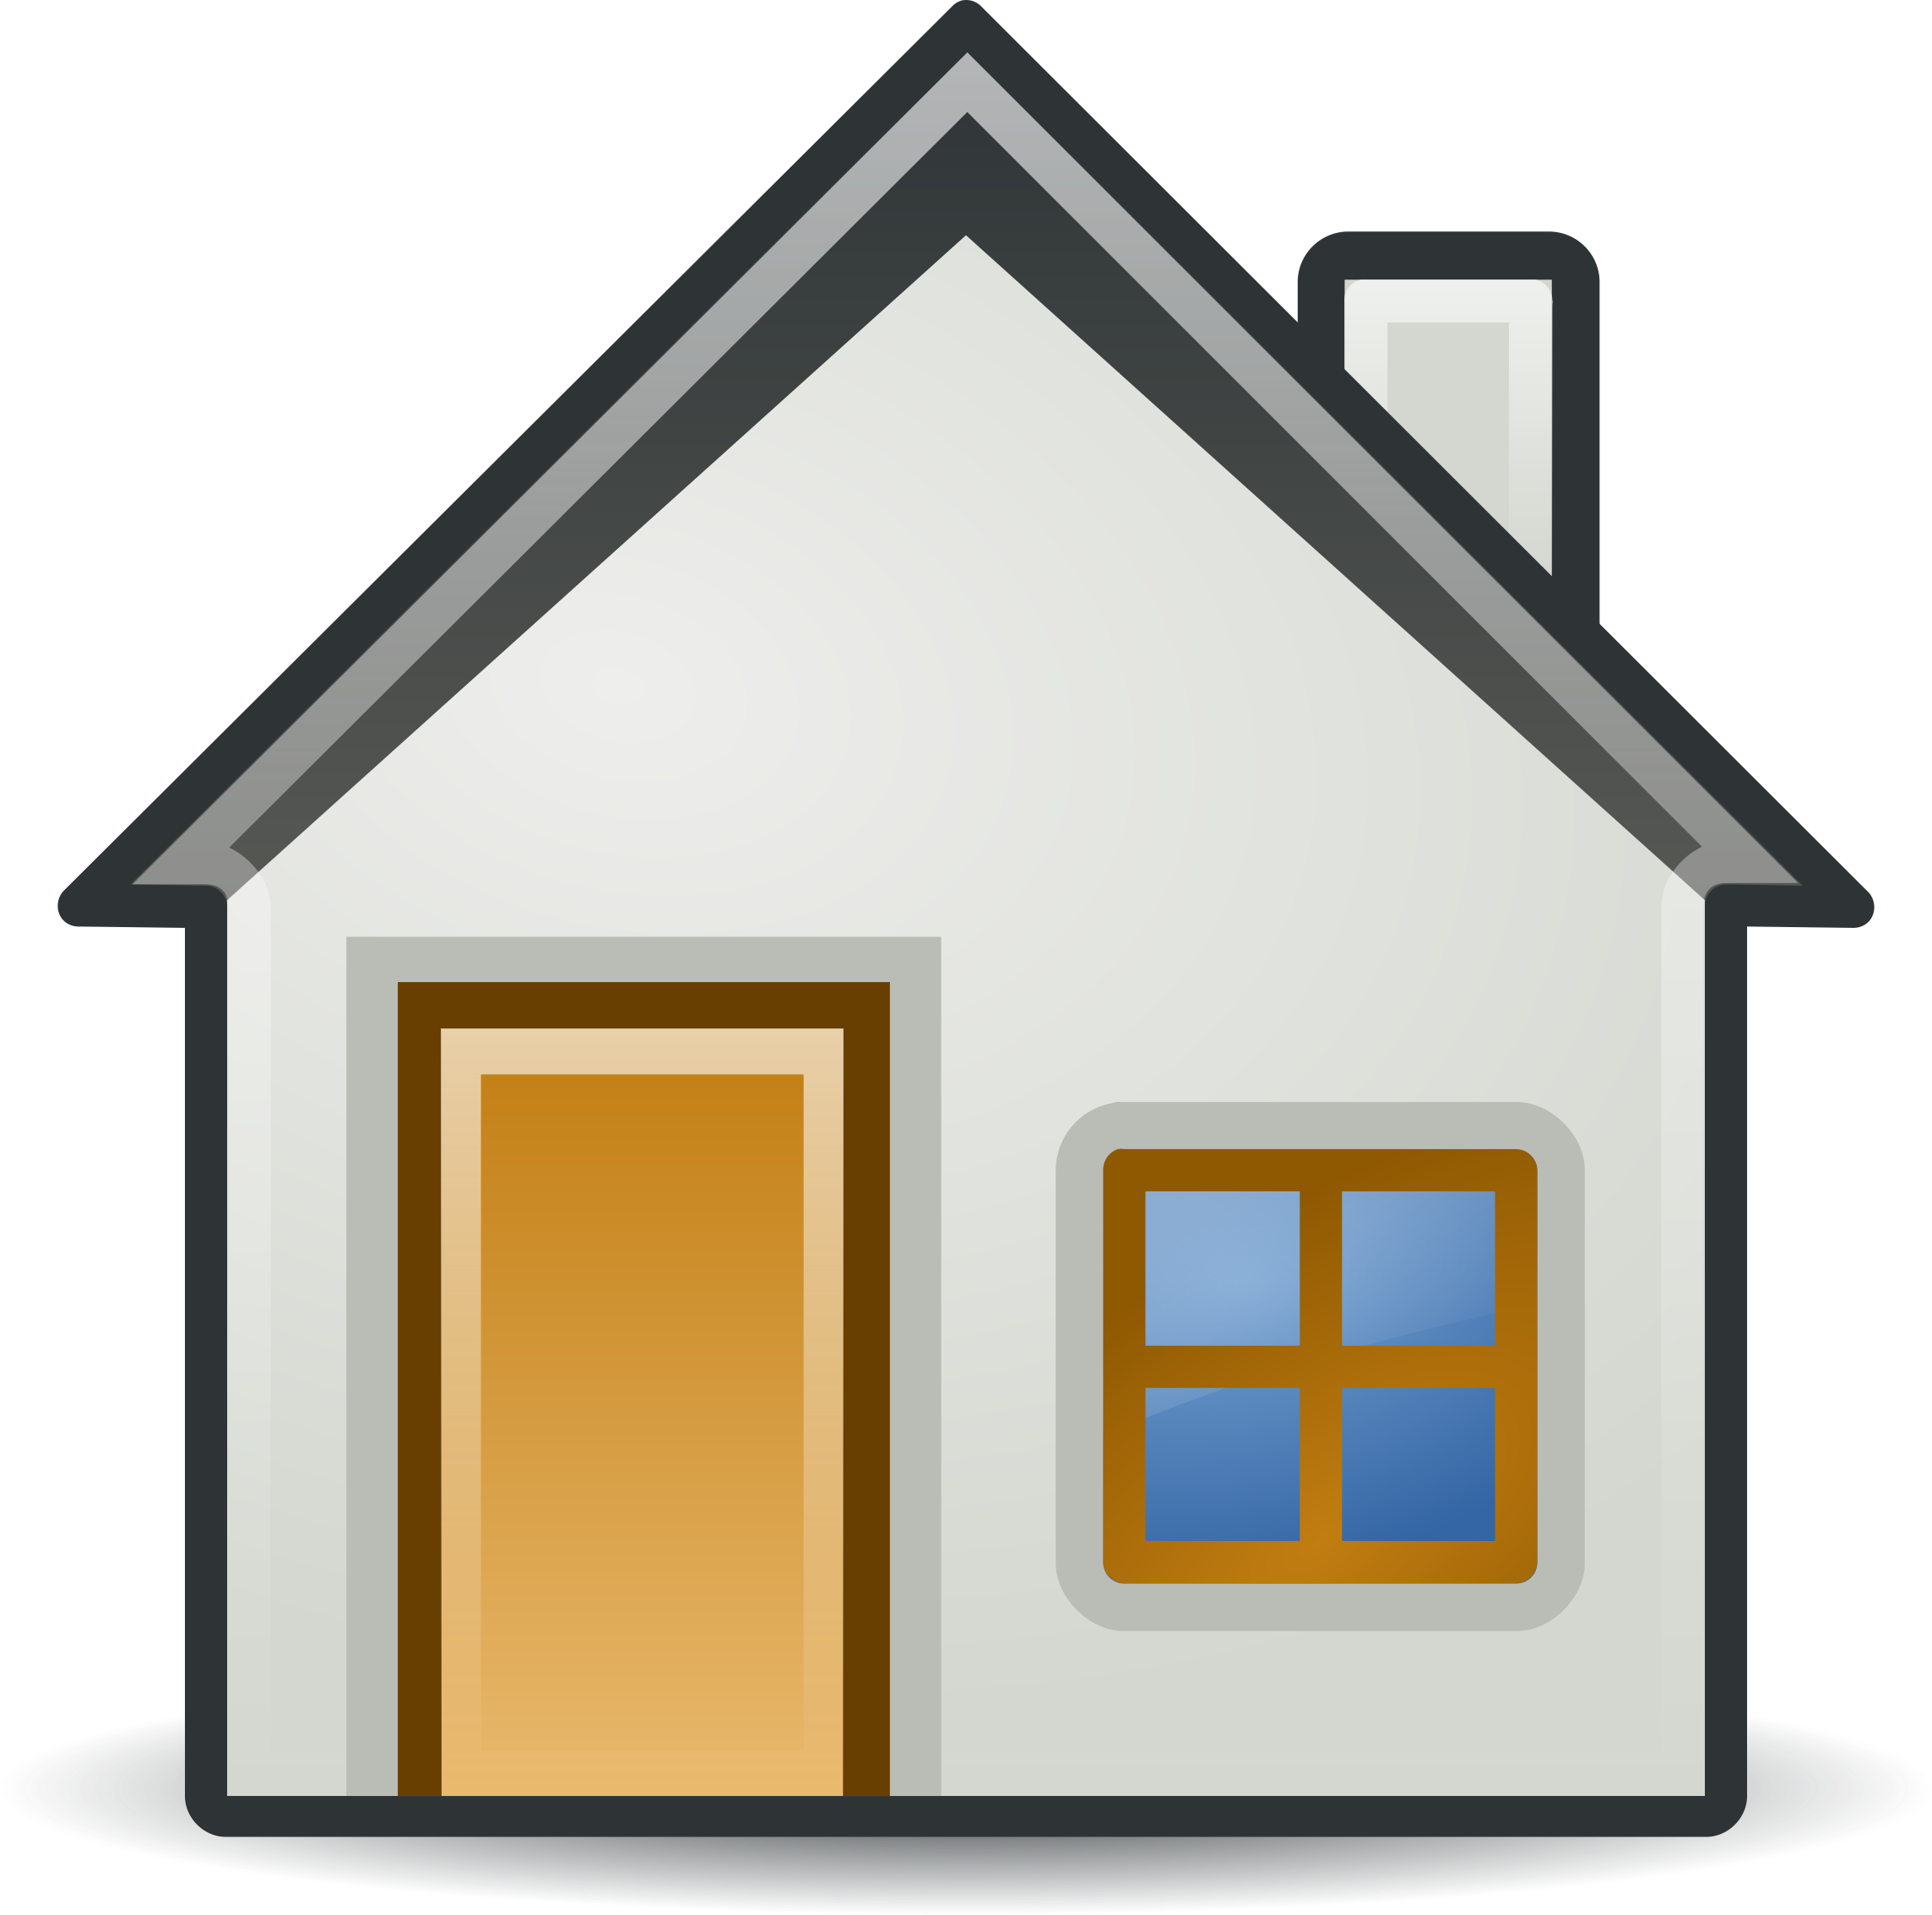 Clipart house for Home img